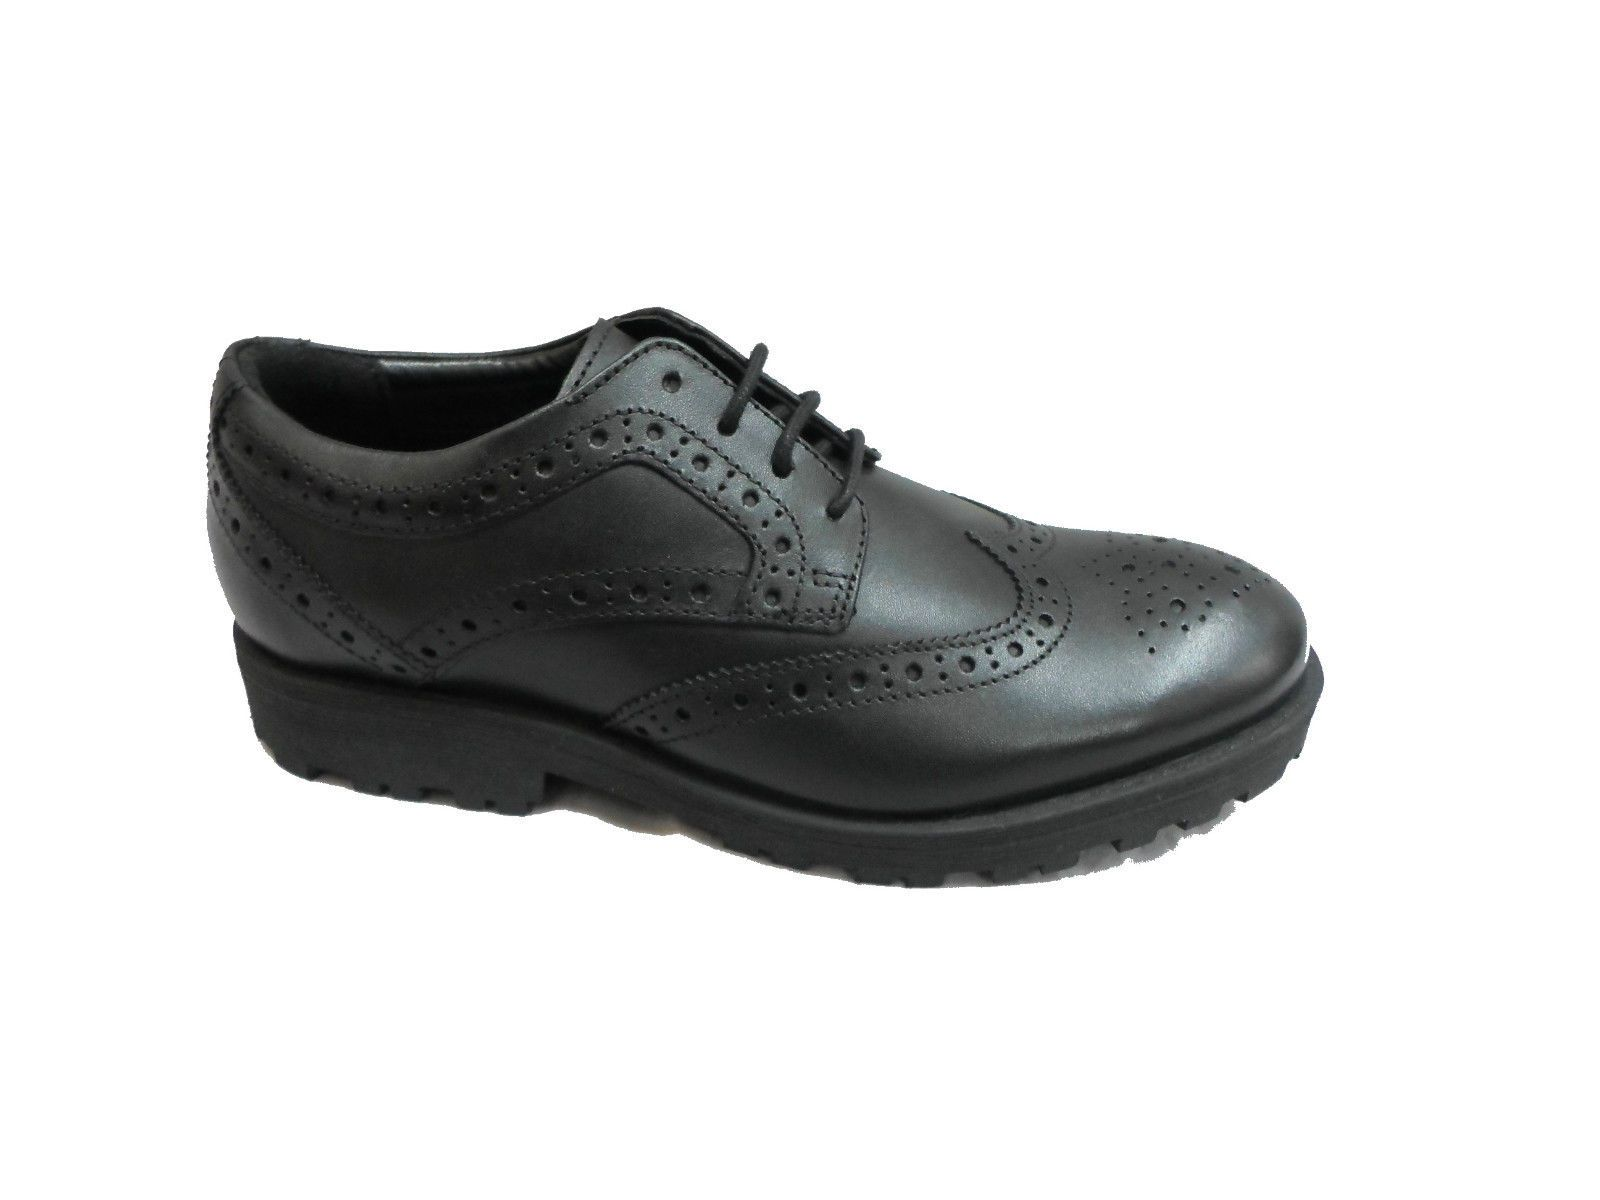 Airsoft Boys Black Smart Brogues Lace Up Shoes